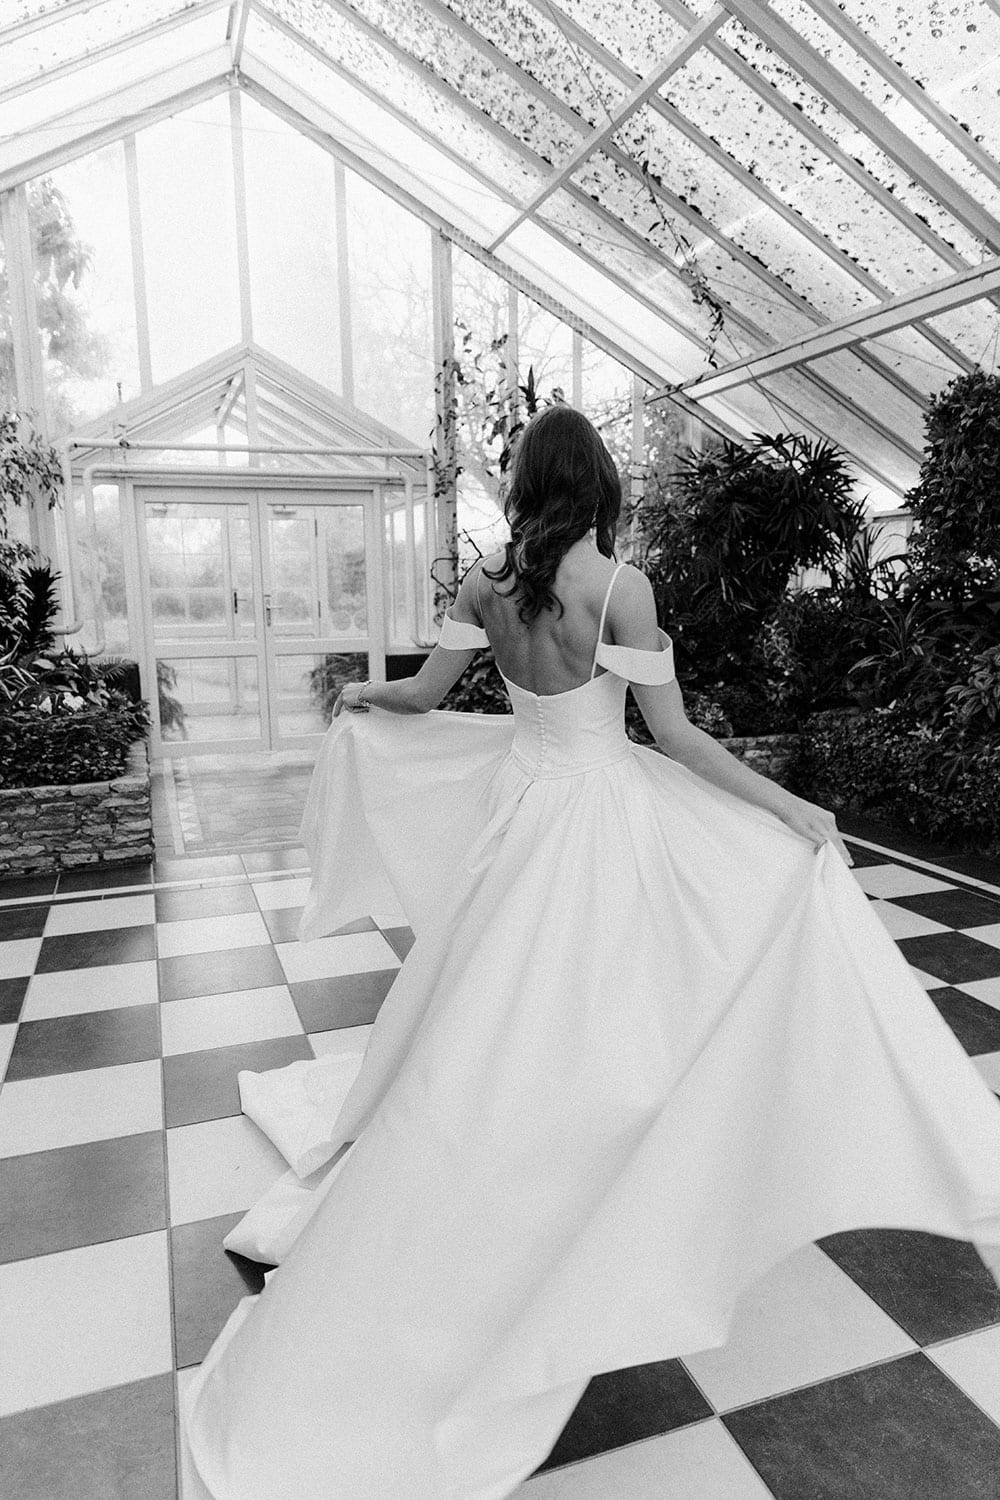 Model wearing Vinka Design Chiara Wedding Dress, a Modern Silk Wedding Gown with Train in a botanical garden greenhouse facing away with train displayed in black and white